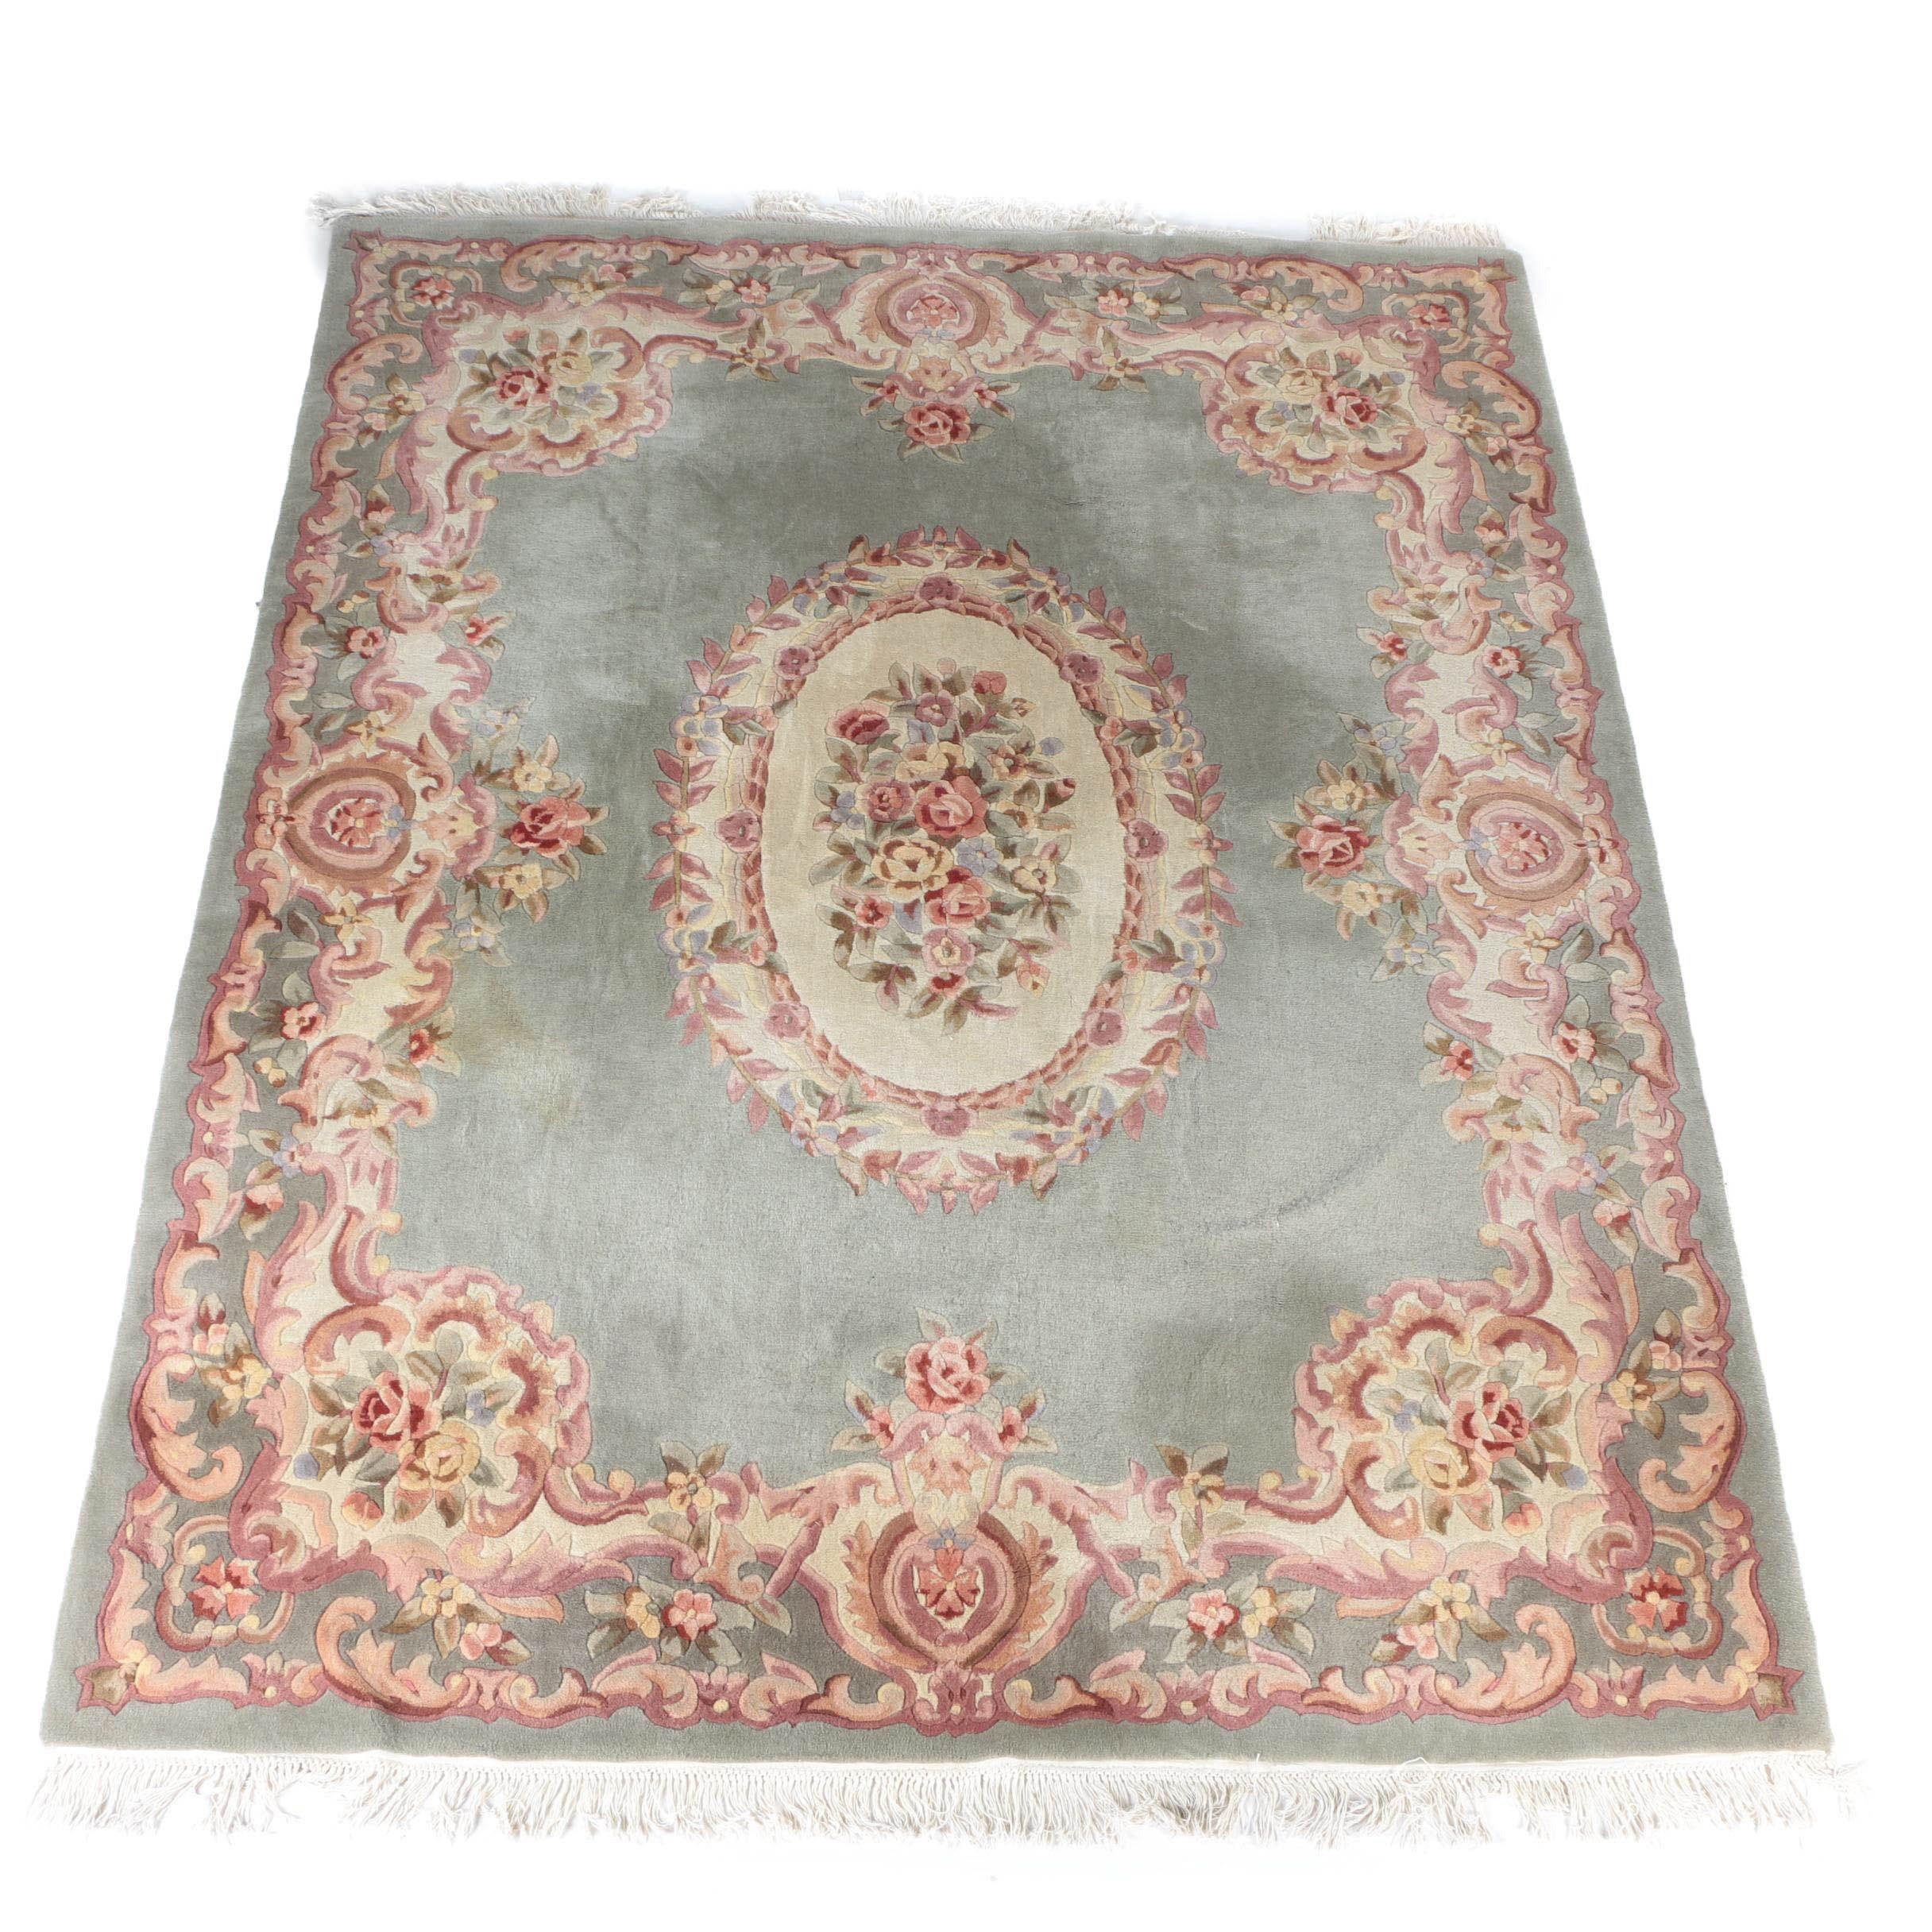 Hand-Tufted Chinese Savonnerie Style Carved Wool Area Rug